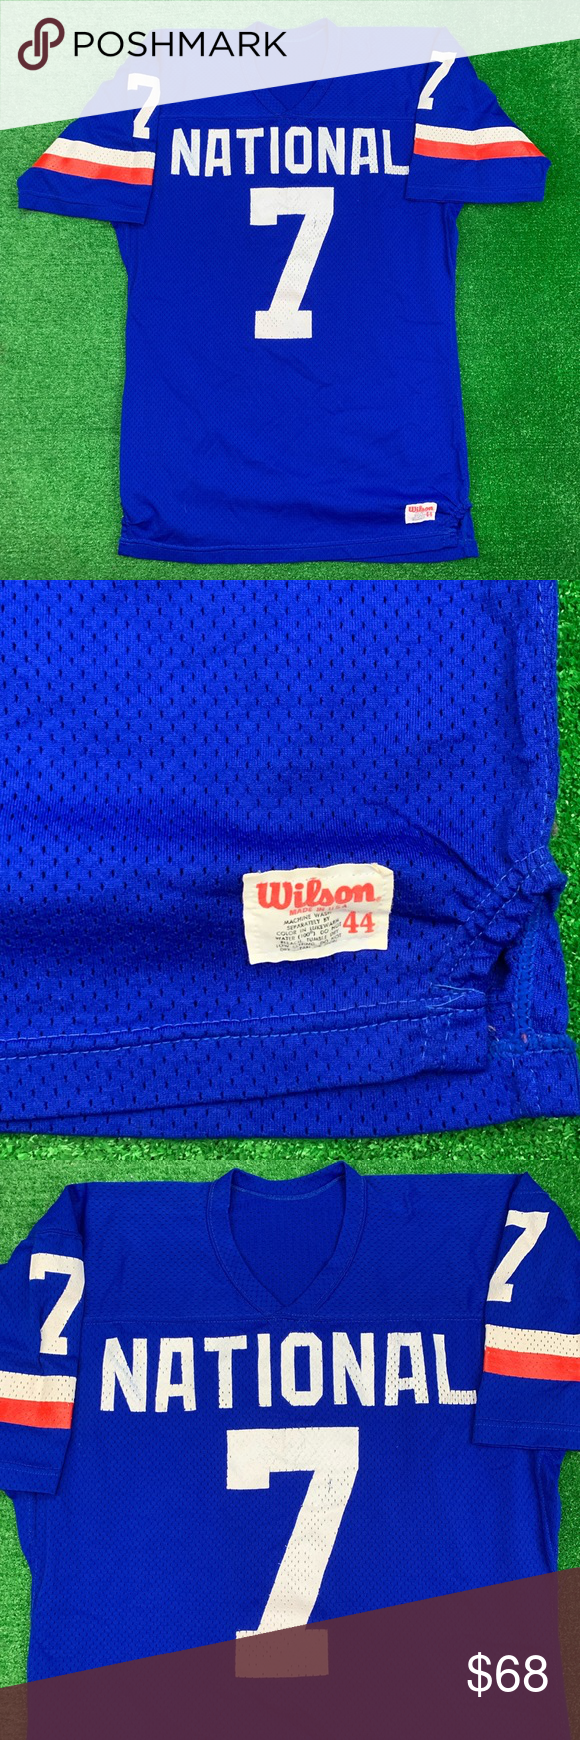 Vintage Wilson NFL National League Pro Bowl Jersey (With